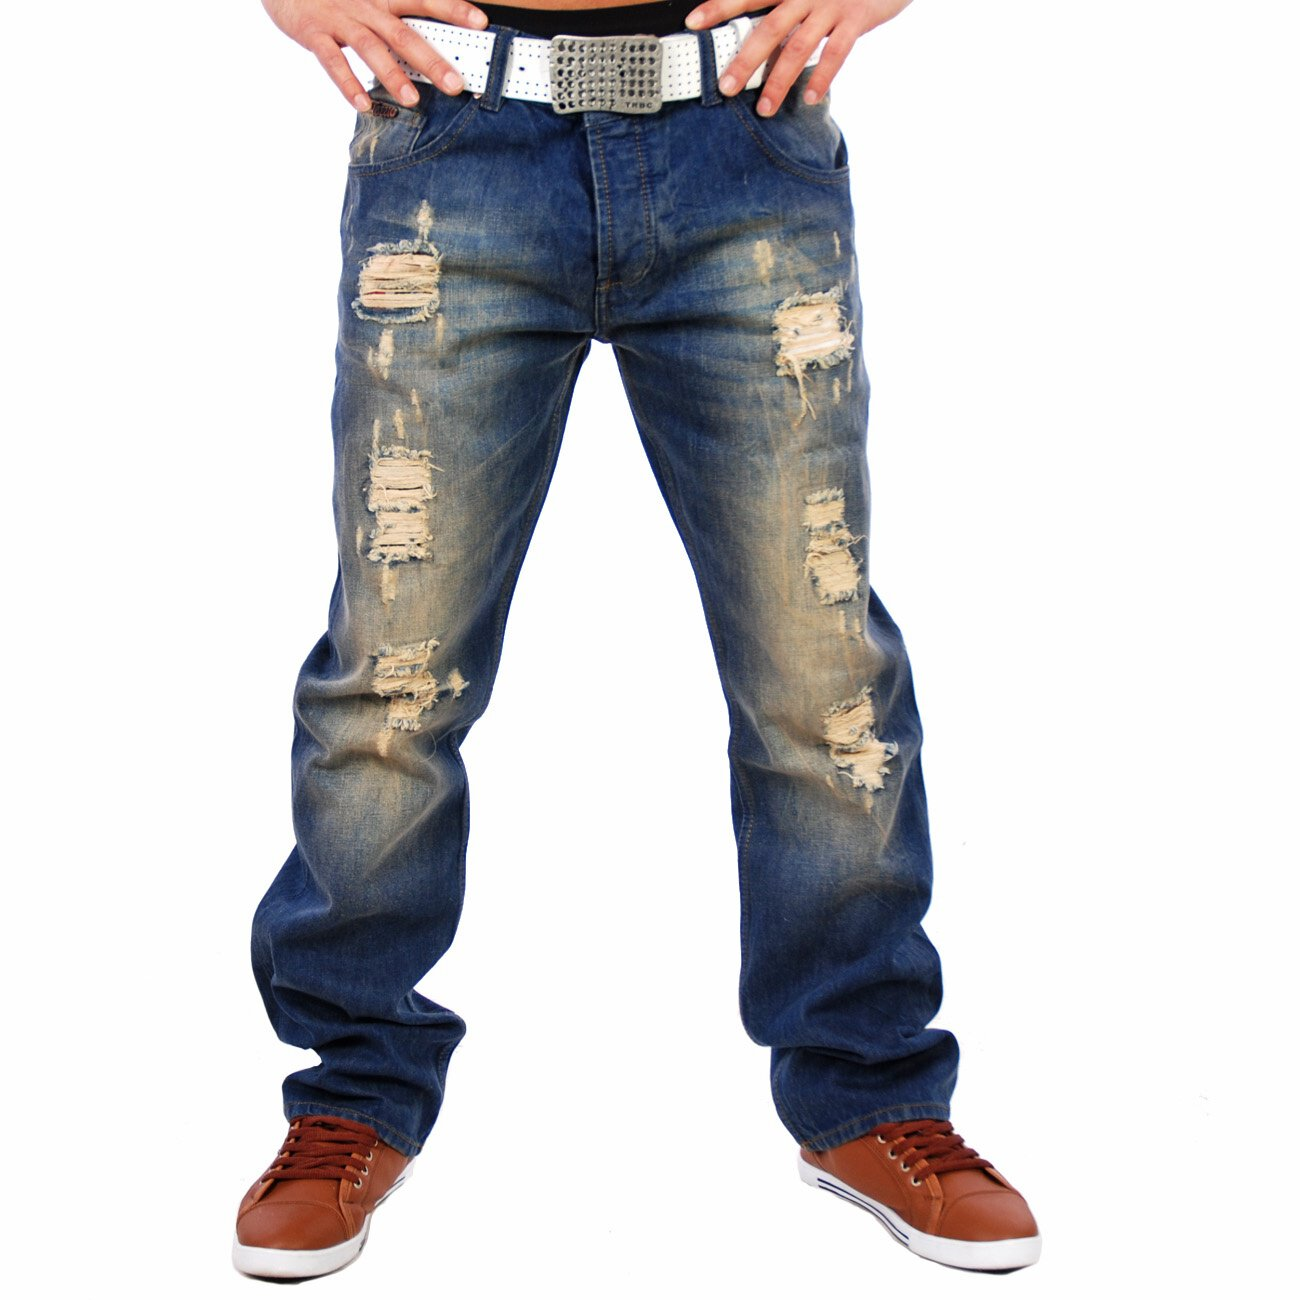 03a1f2f218ae5d Herren Jeans Destroyed Look Tazzio 5066-2